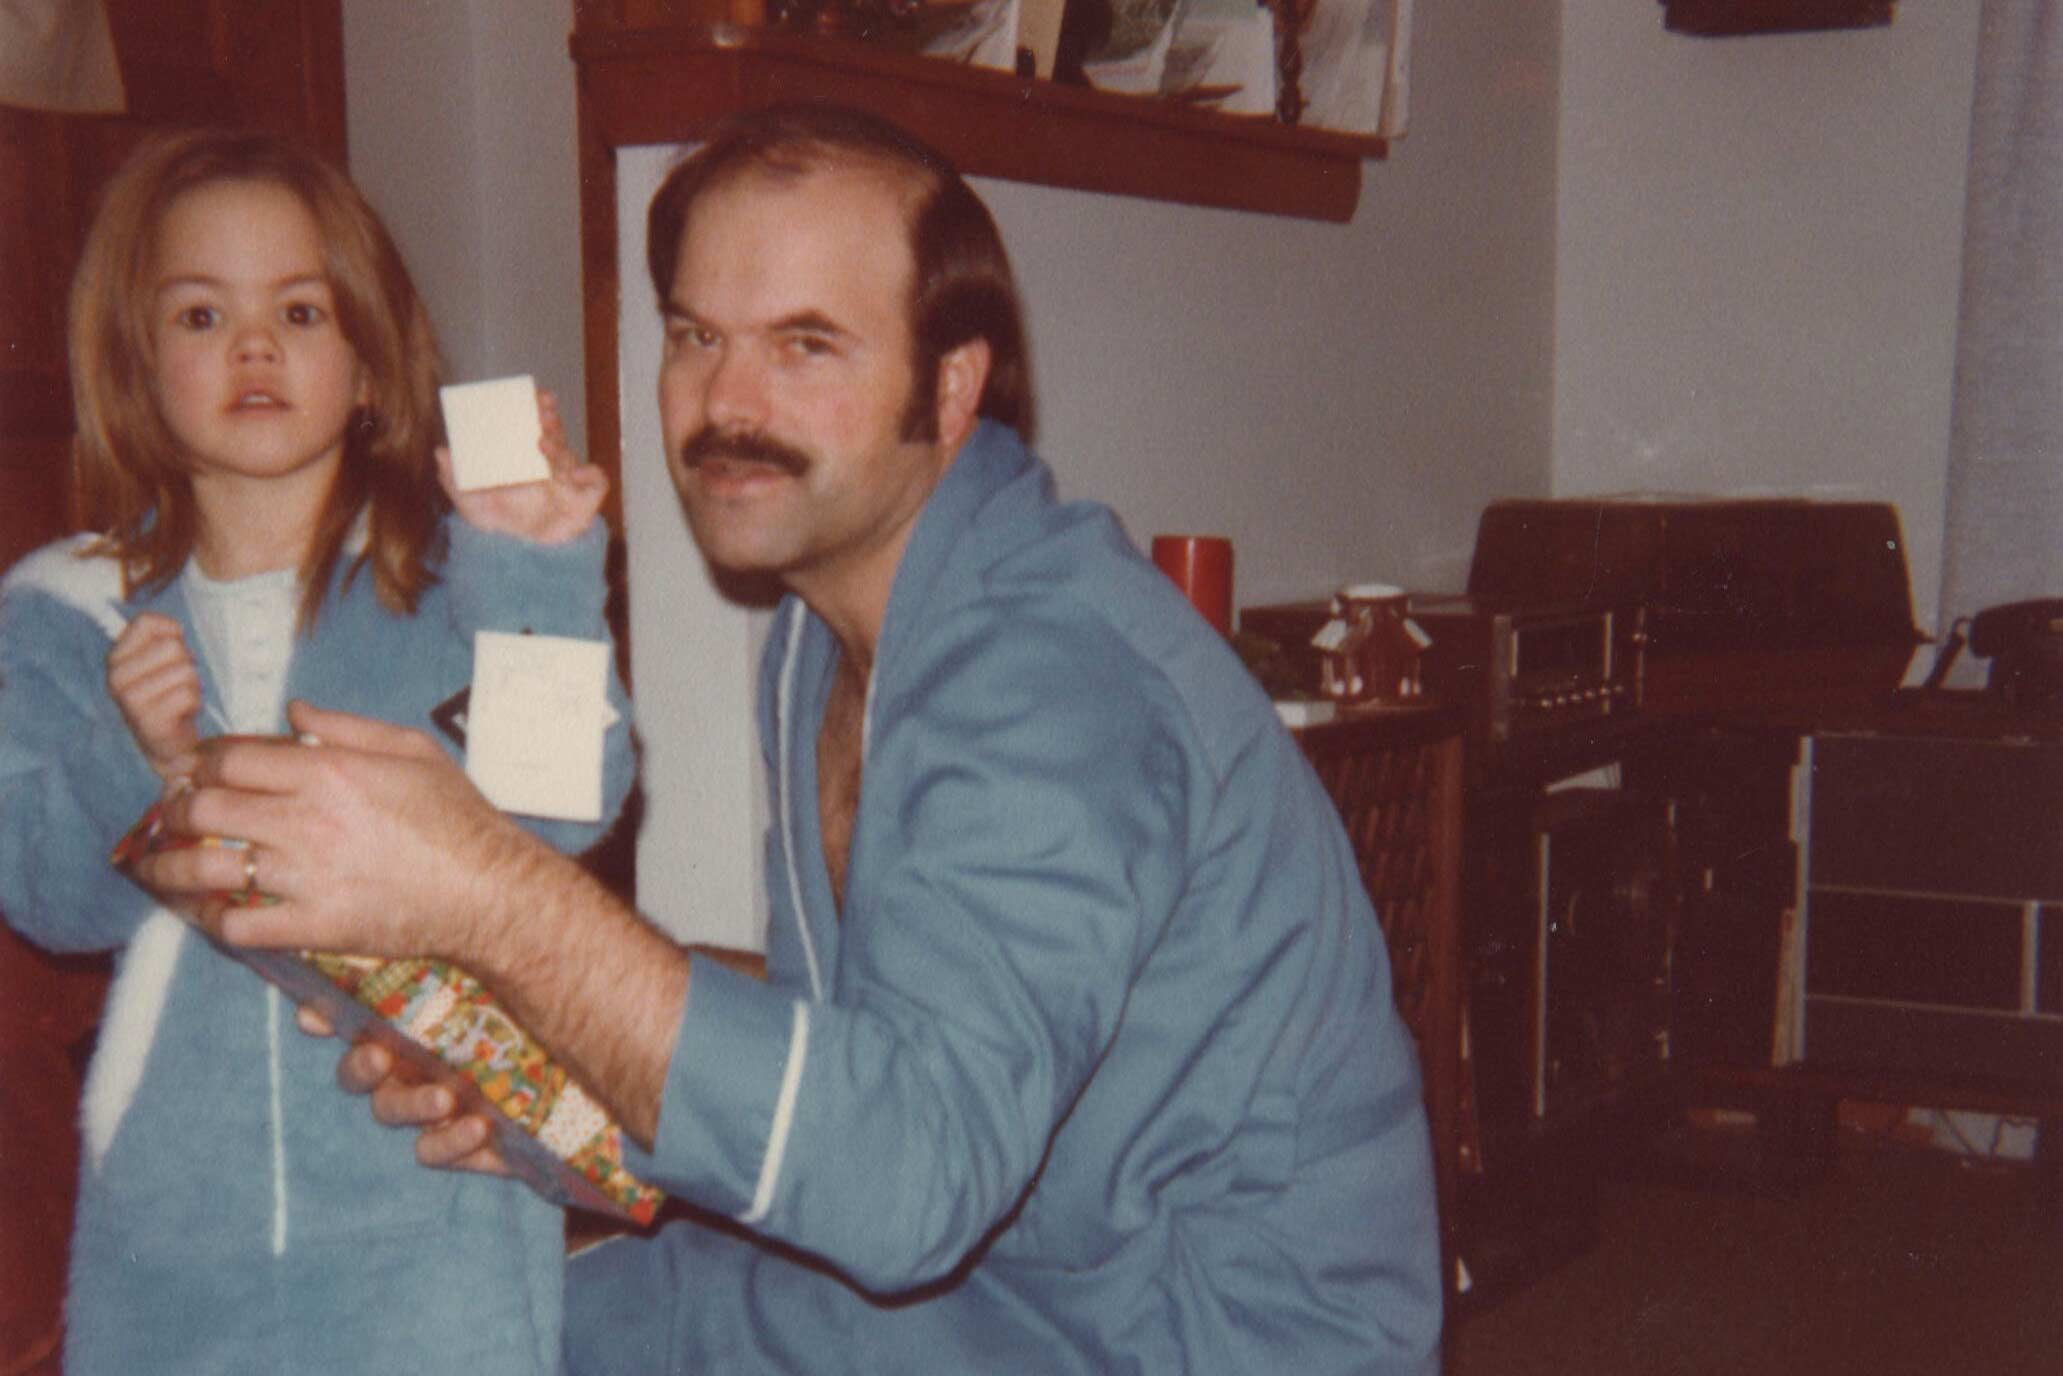 A young girl and her father open a present while wearing pajamas.